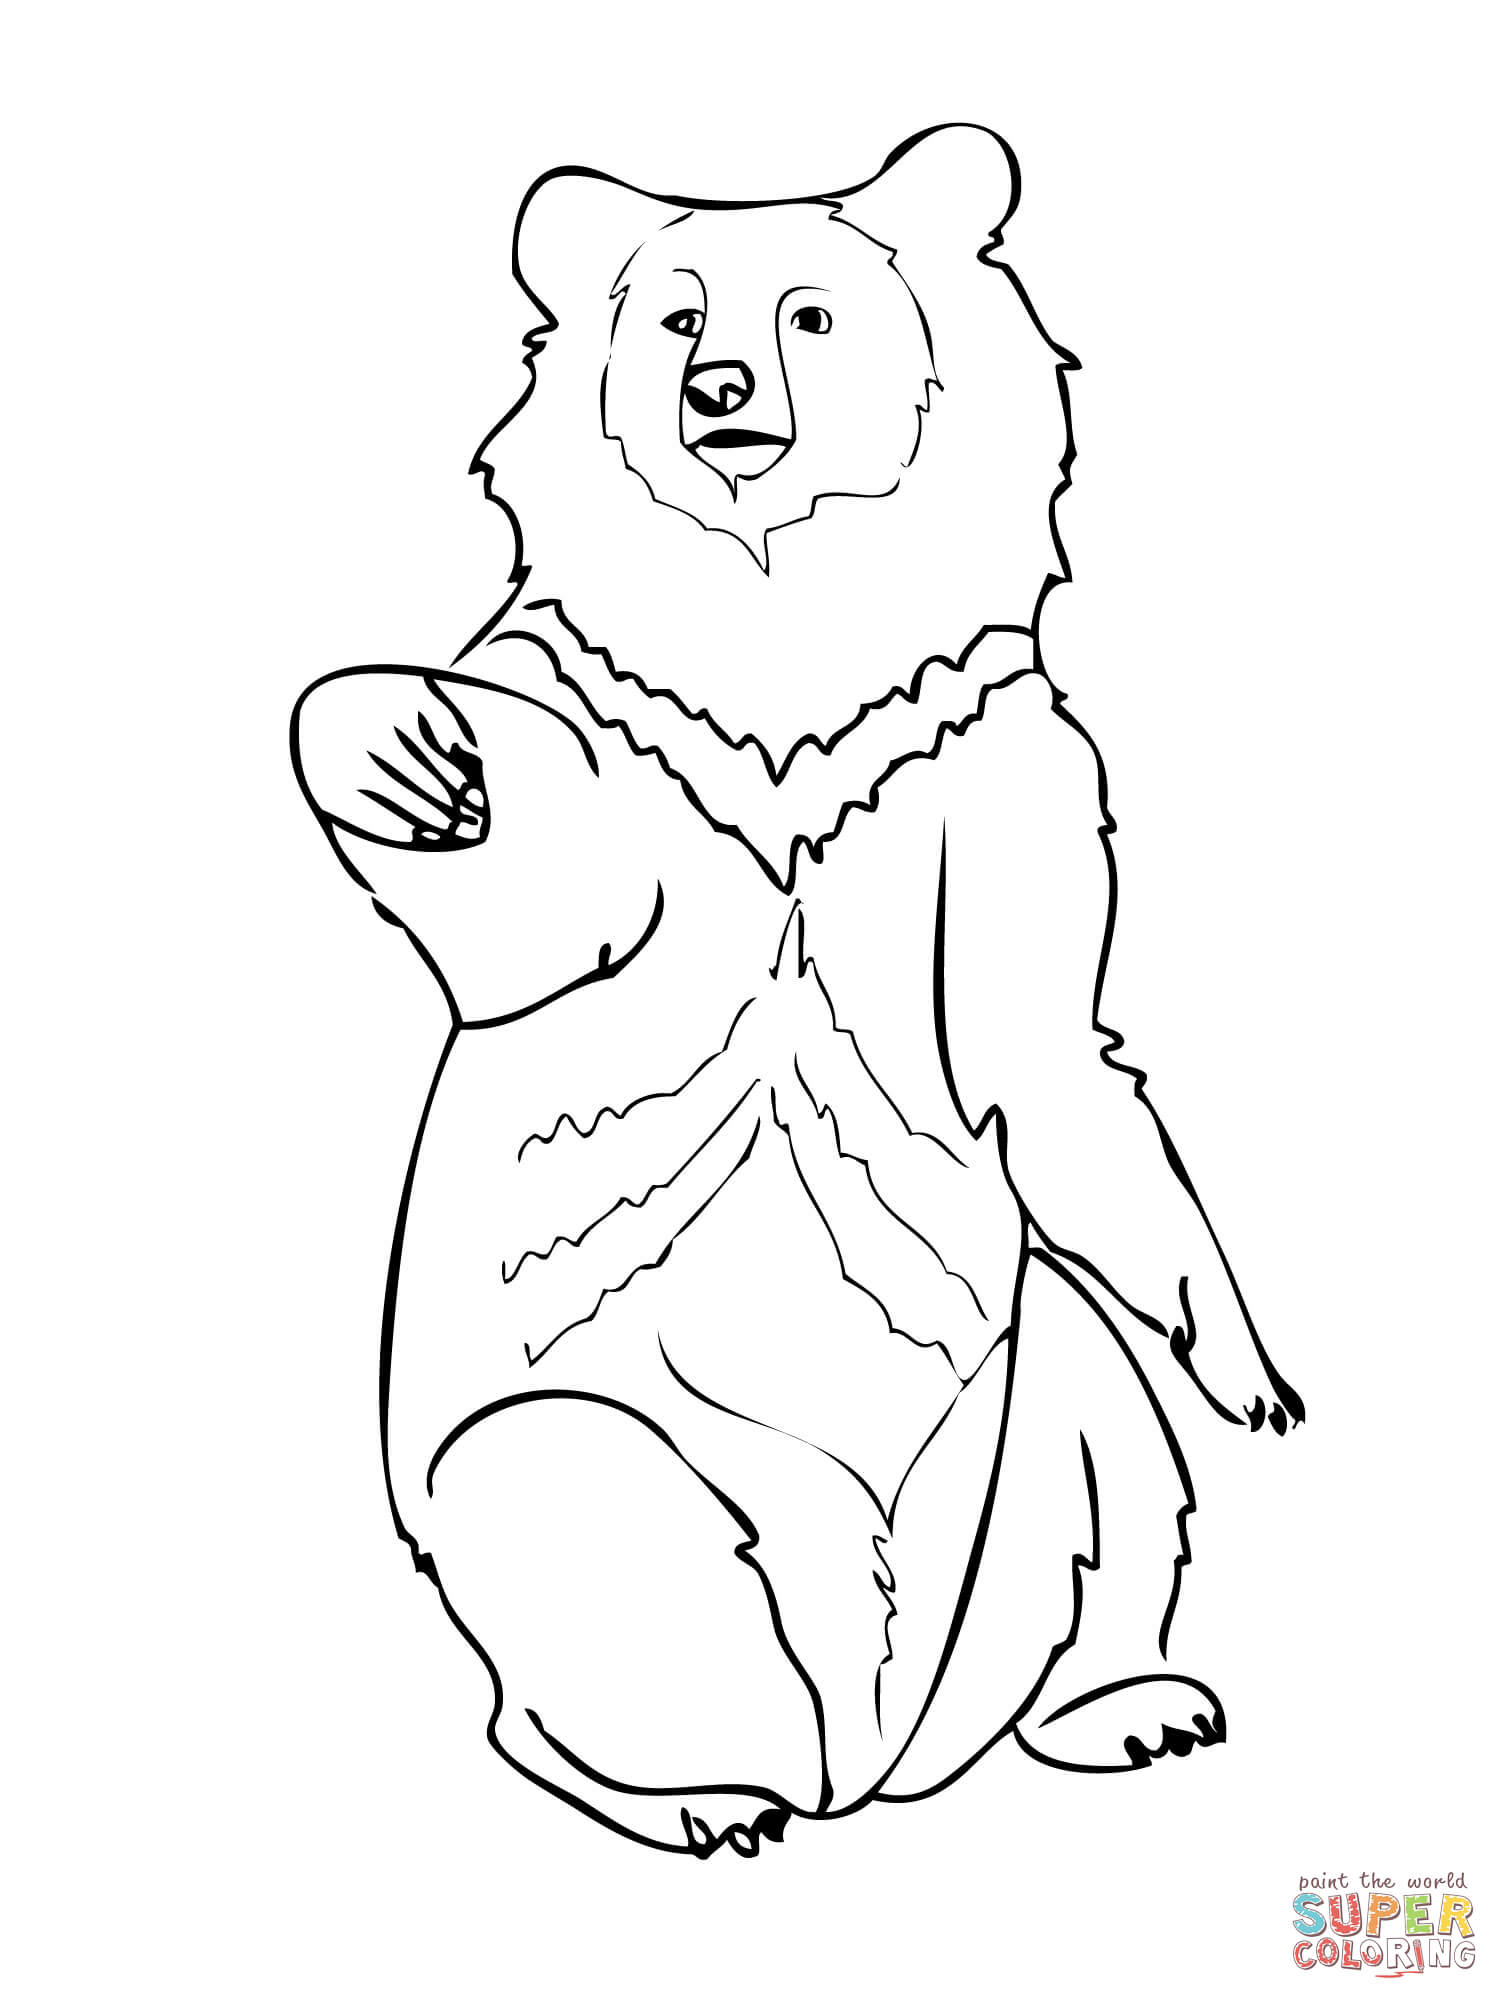 bear cub coloring pages - Master Coloring Pages